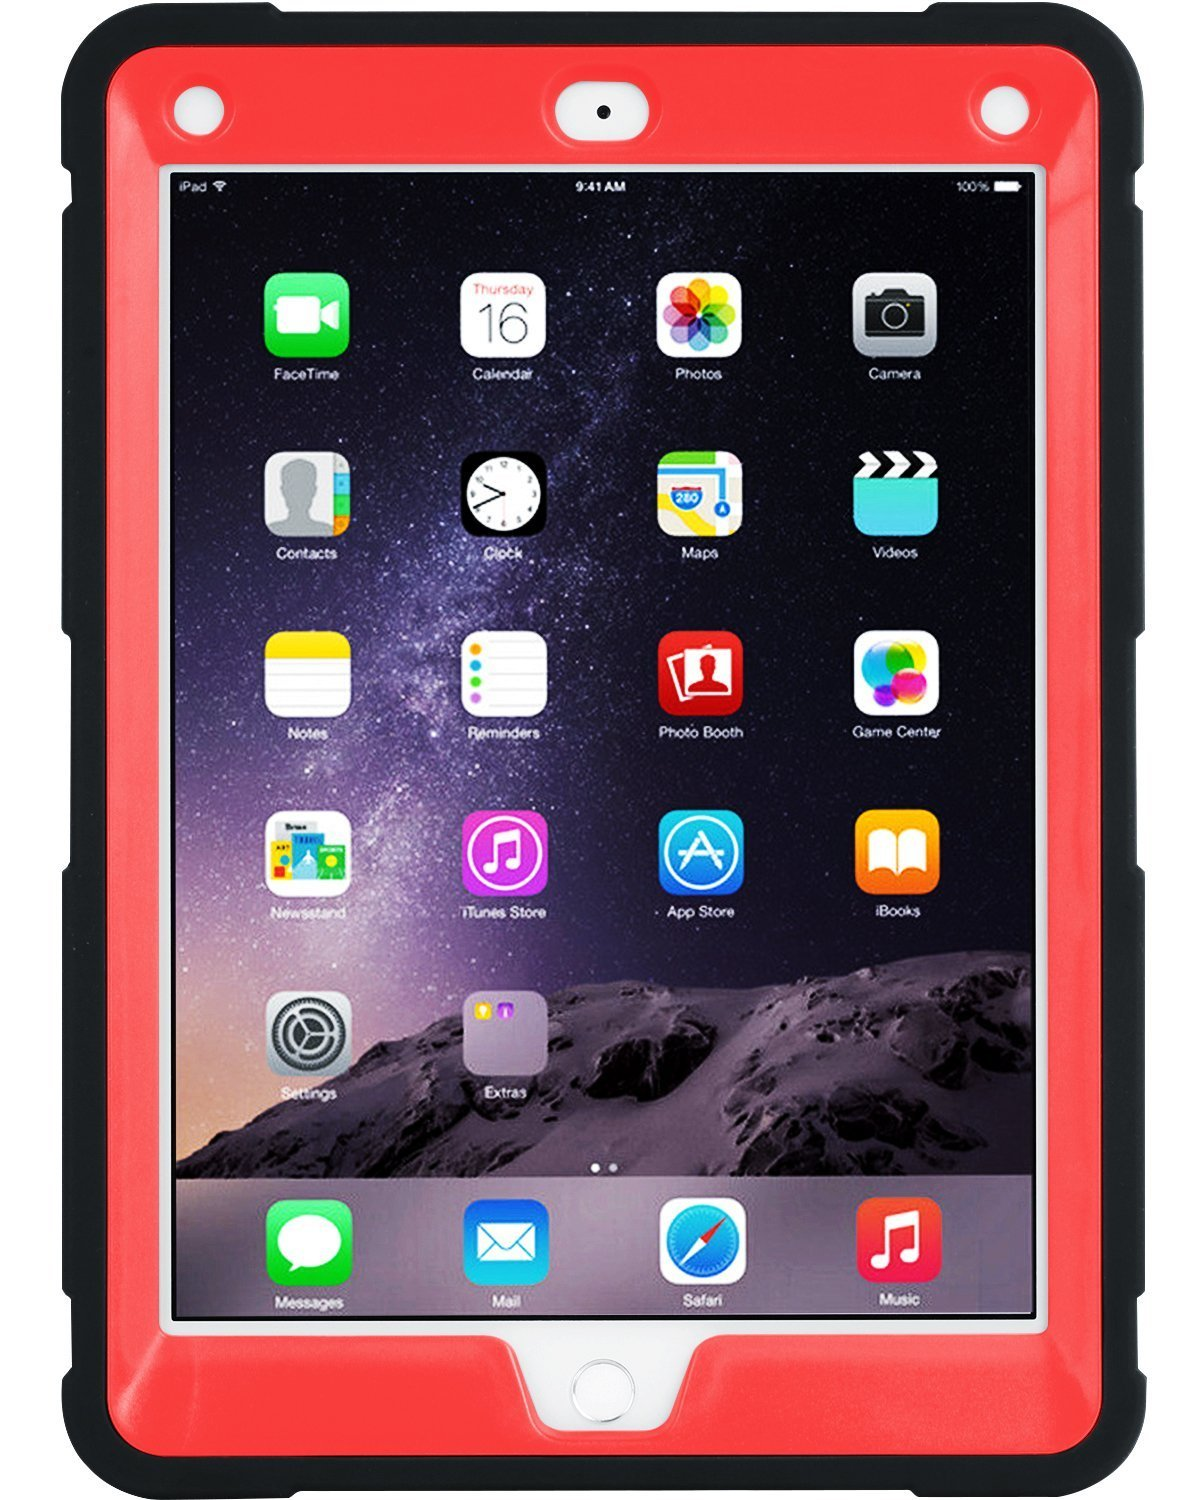 iPad Air 2 Case Kids Friendly Hybrid Hard PC Soft Silicone Bumper Rugged Triple-Layer Shock-Resistant Drop Proof Protective iPad Case Cover with Kickstand for Apple iPad Air 2 with Retina Displa Apple iPad Air 2 Case BENTOBEN iPad 6 Case 2014 Release